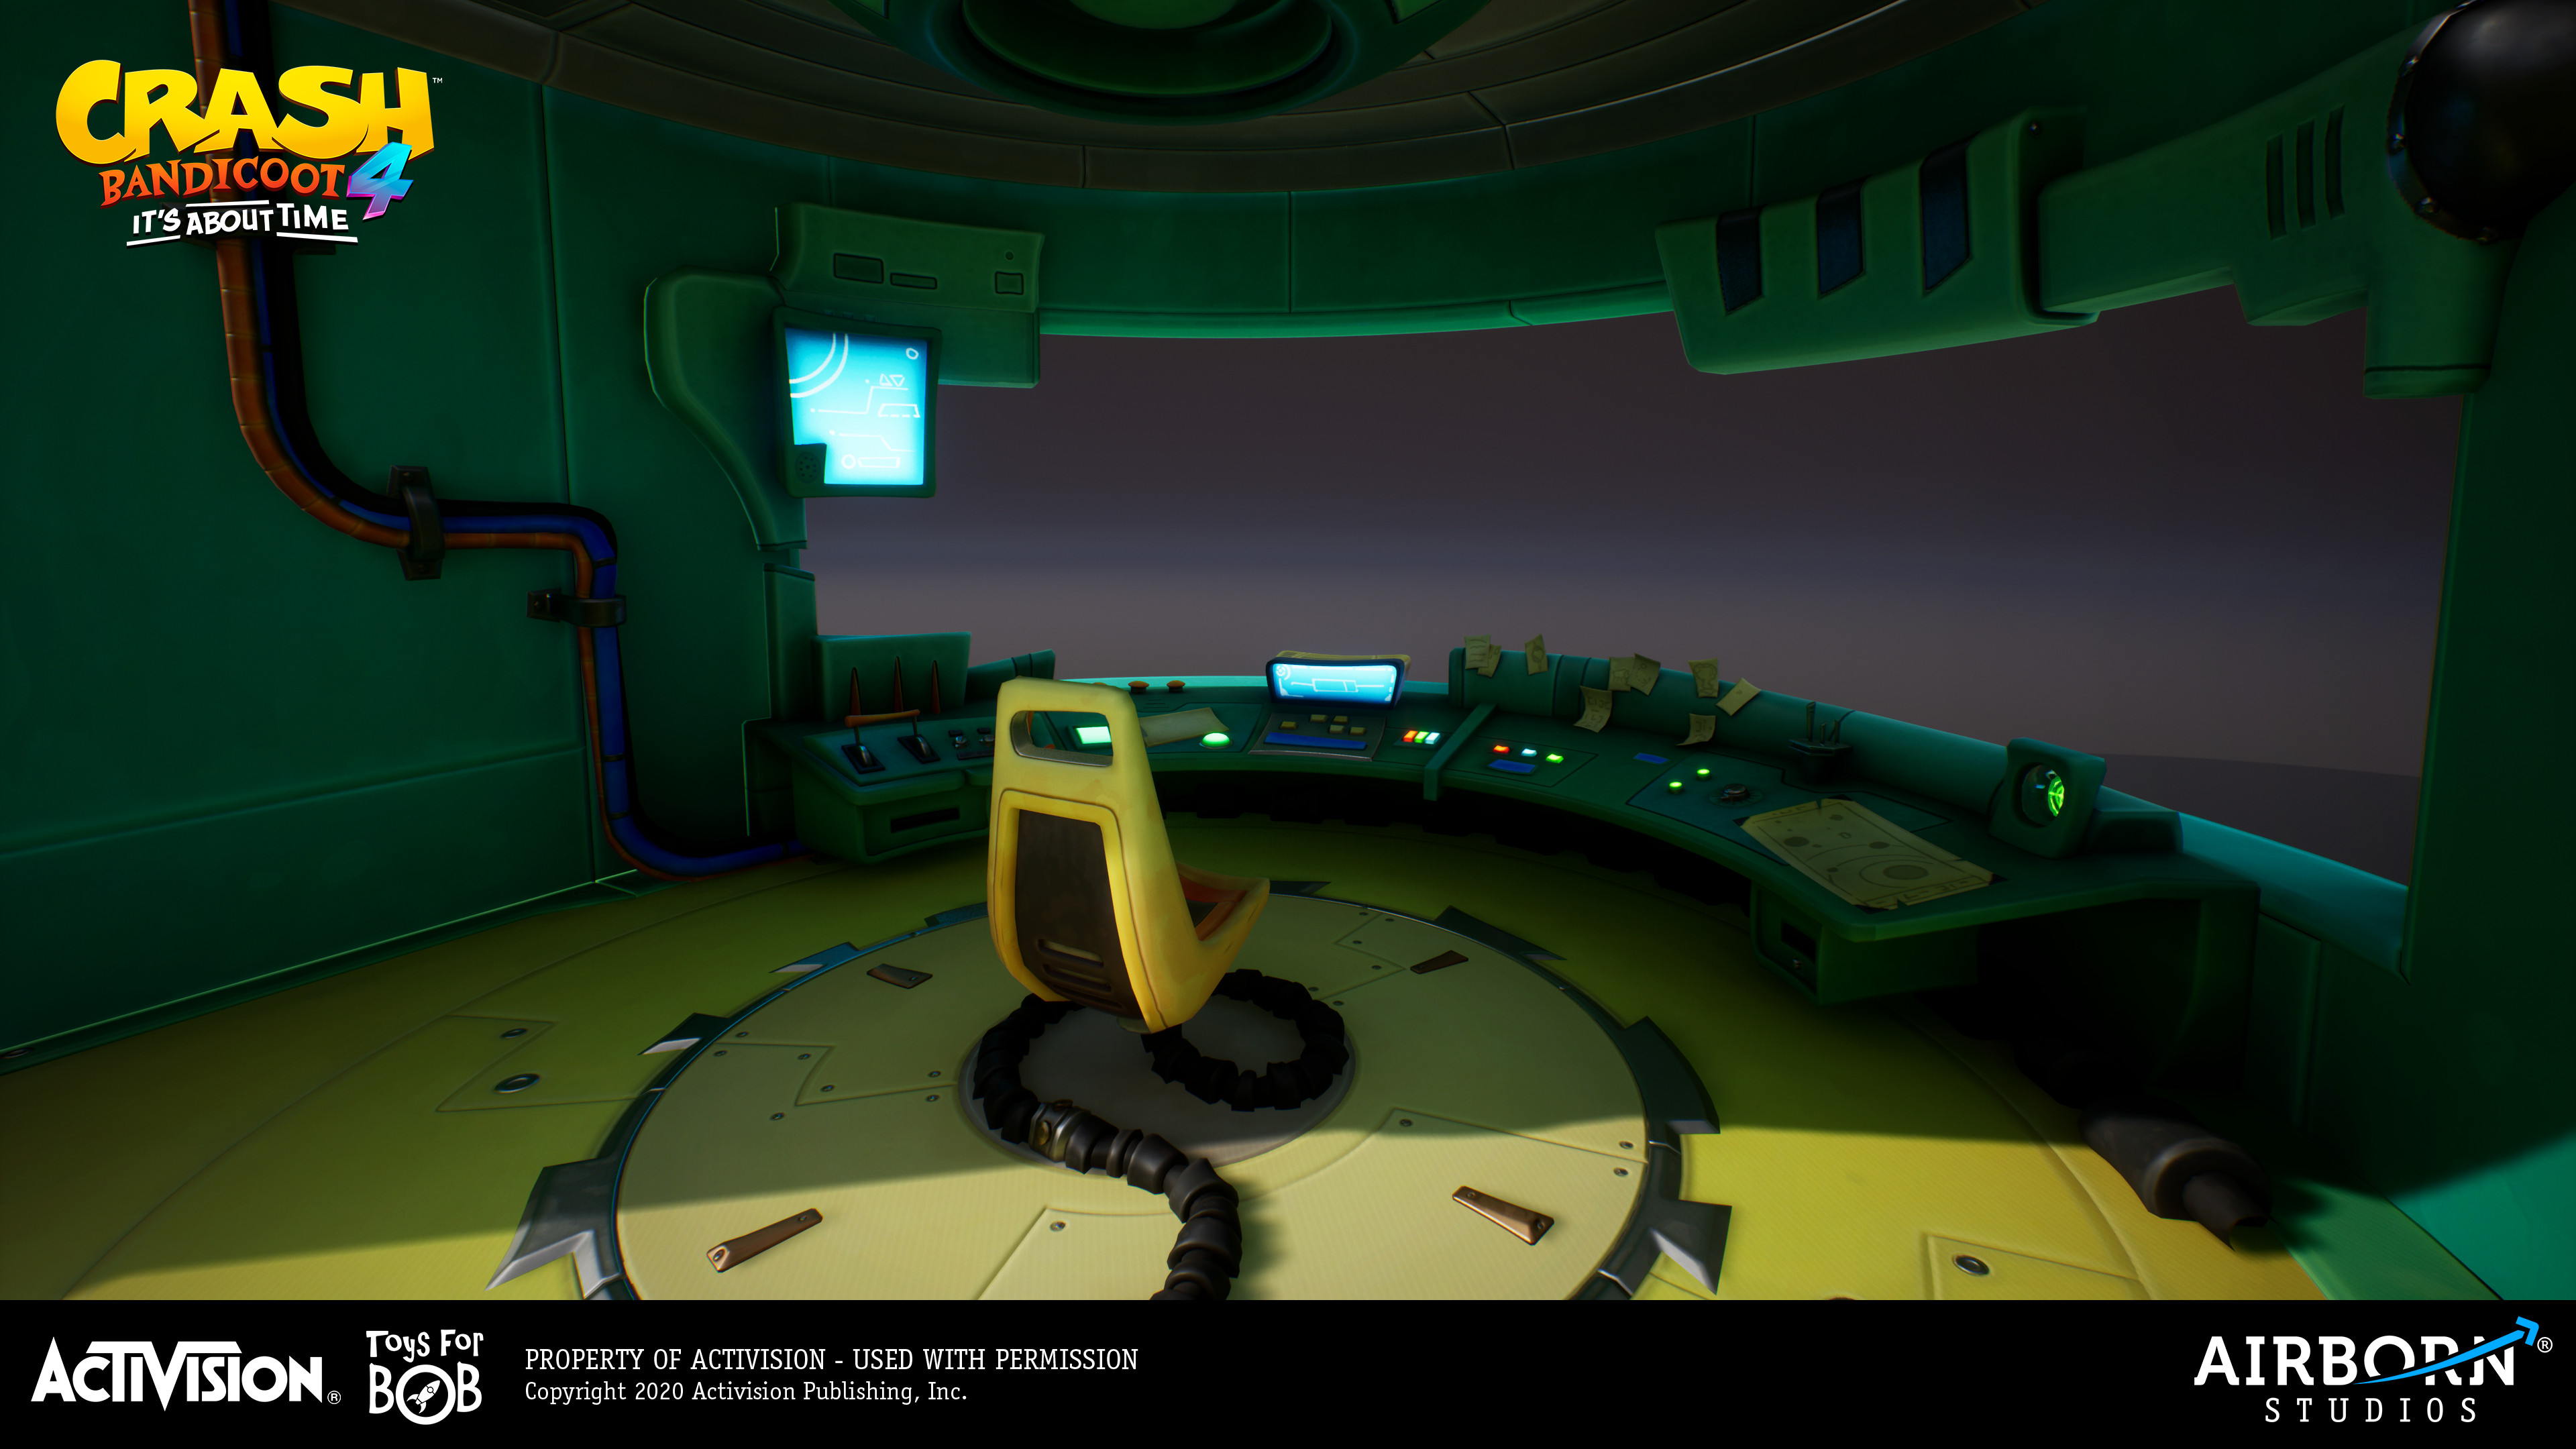 Neo Cortex Control Room - 3D work done by Frederic Fouque; support by Benjamin Sauer and Manuel Virks (lighting)